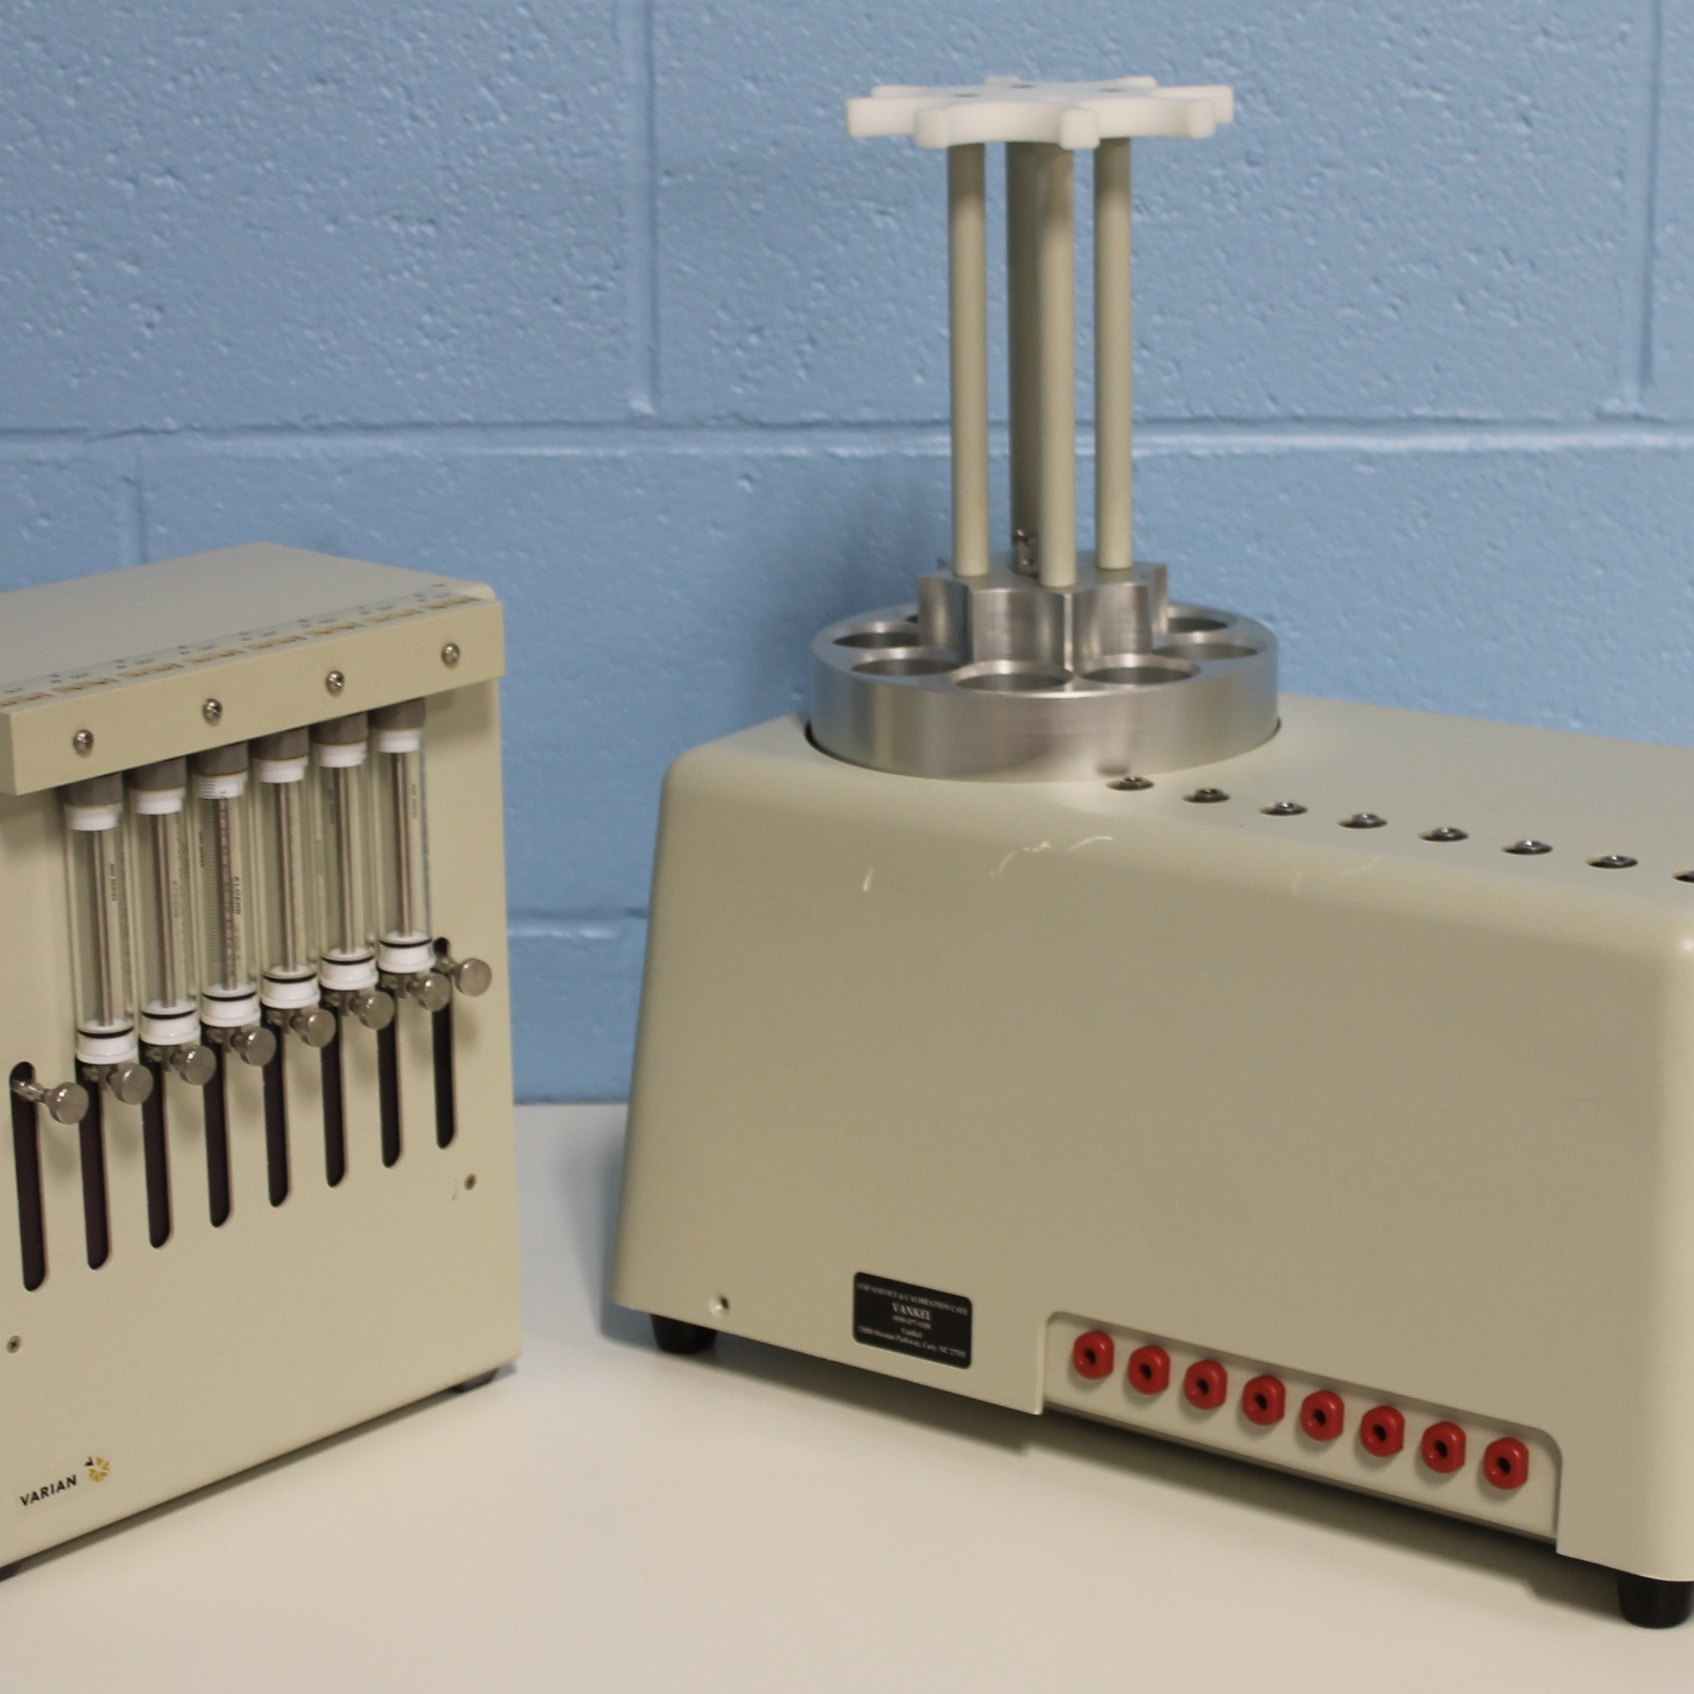 Varian 8 Channel Syringe Pump Filter Model 15-5000 Image